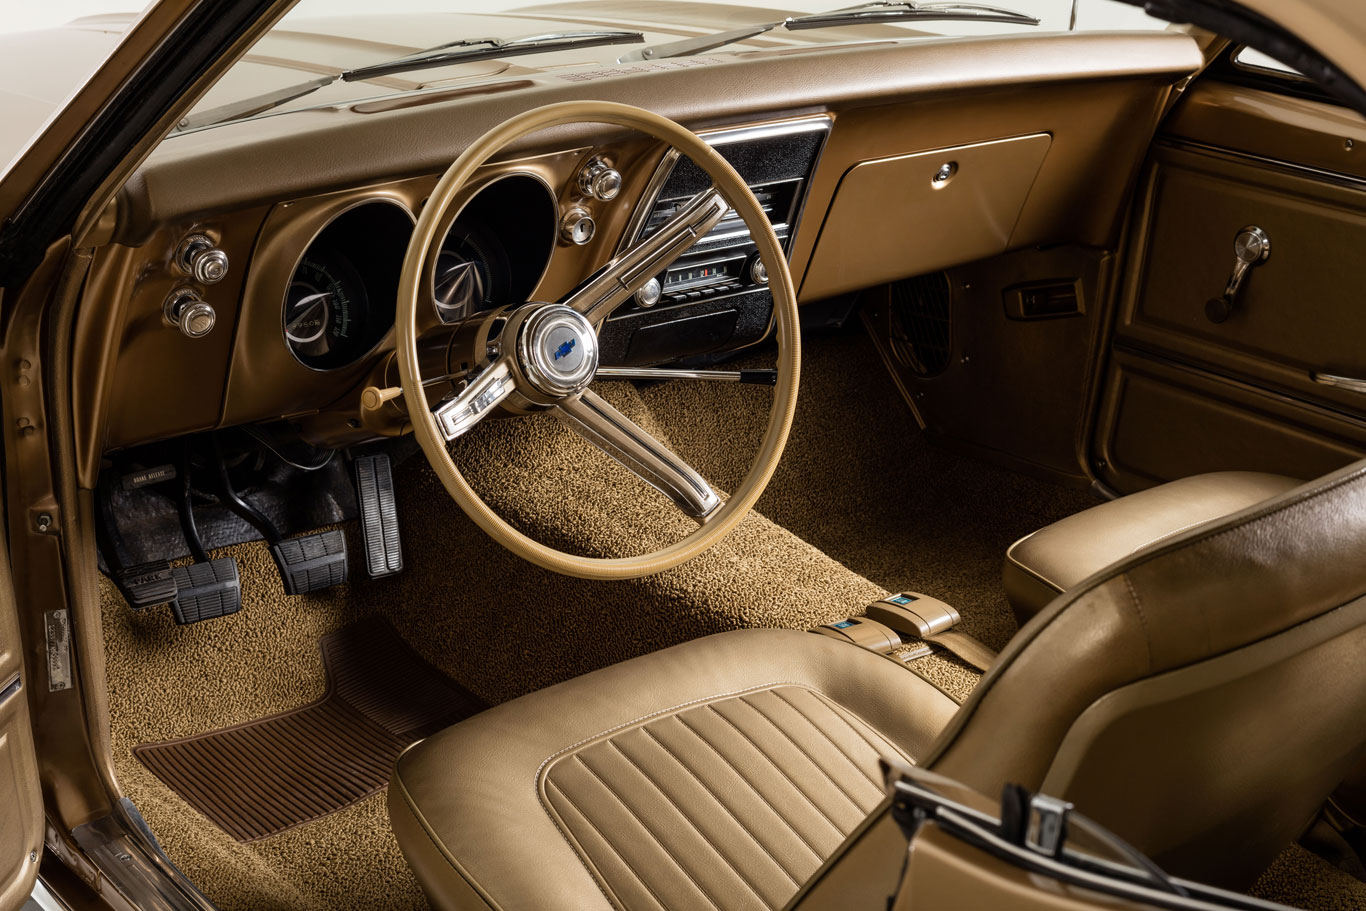 The interior has been restored to the original gold finish. The transmission is a three-speed manual with a column shift.